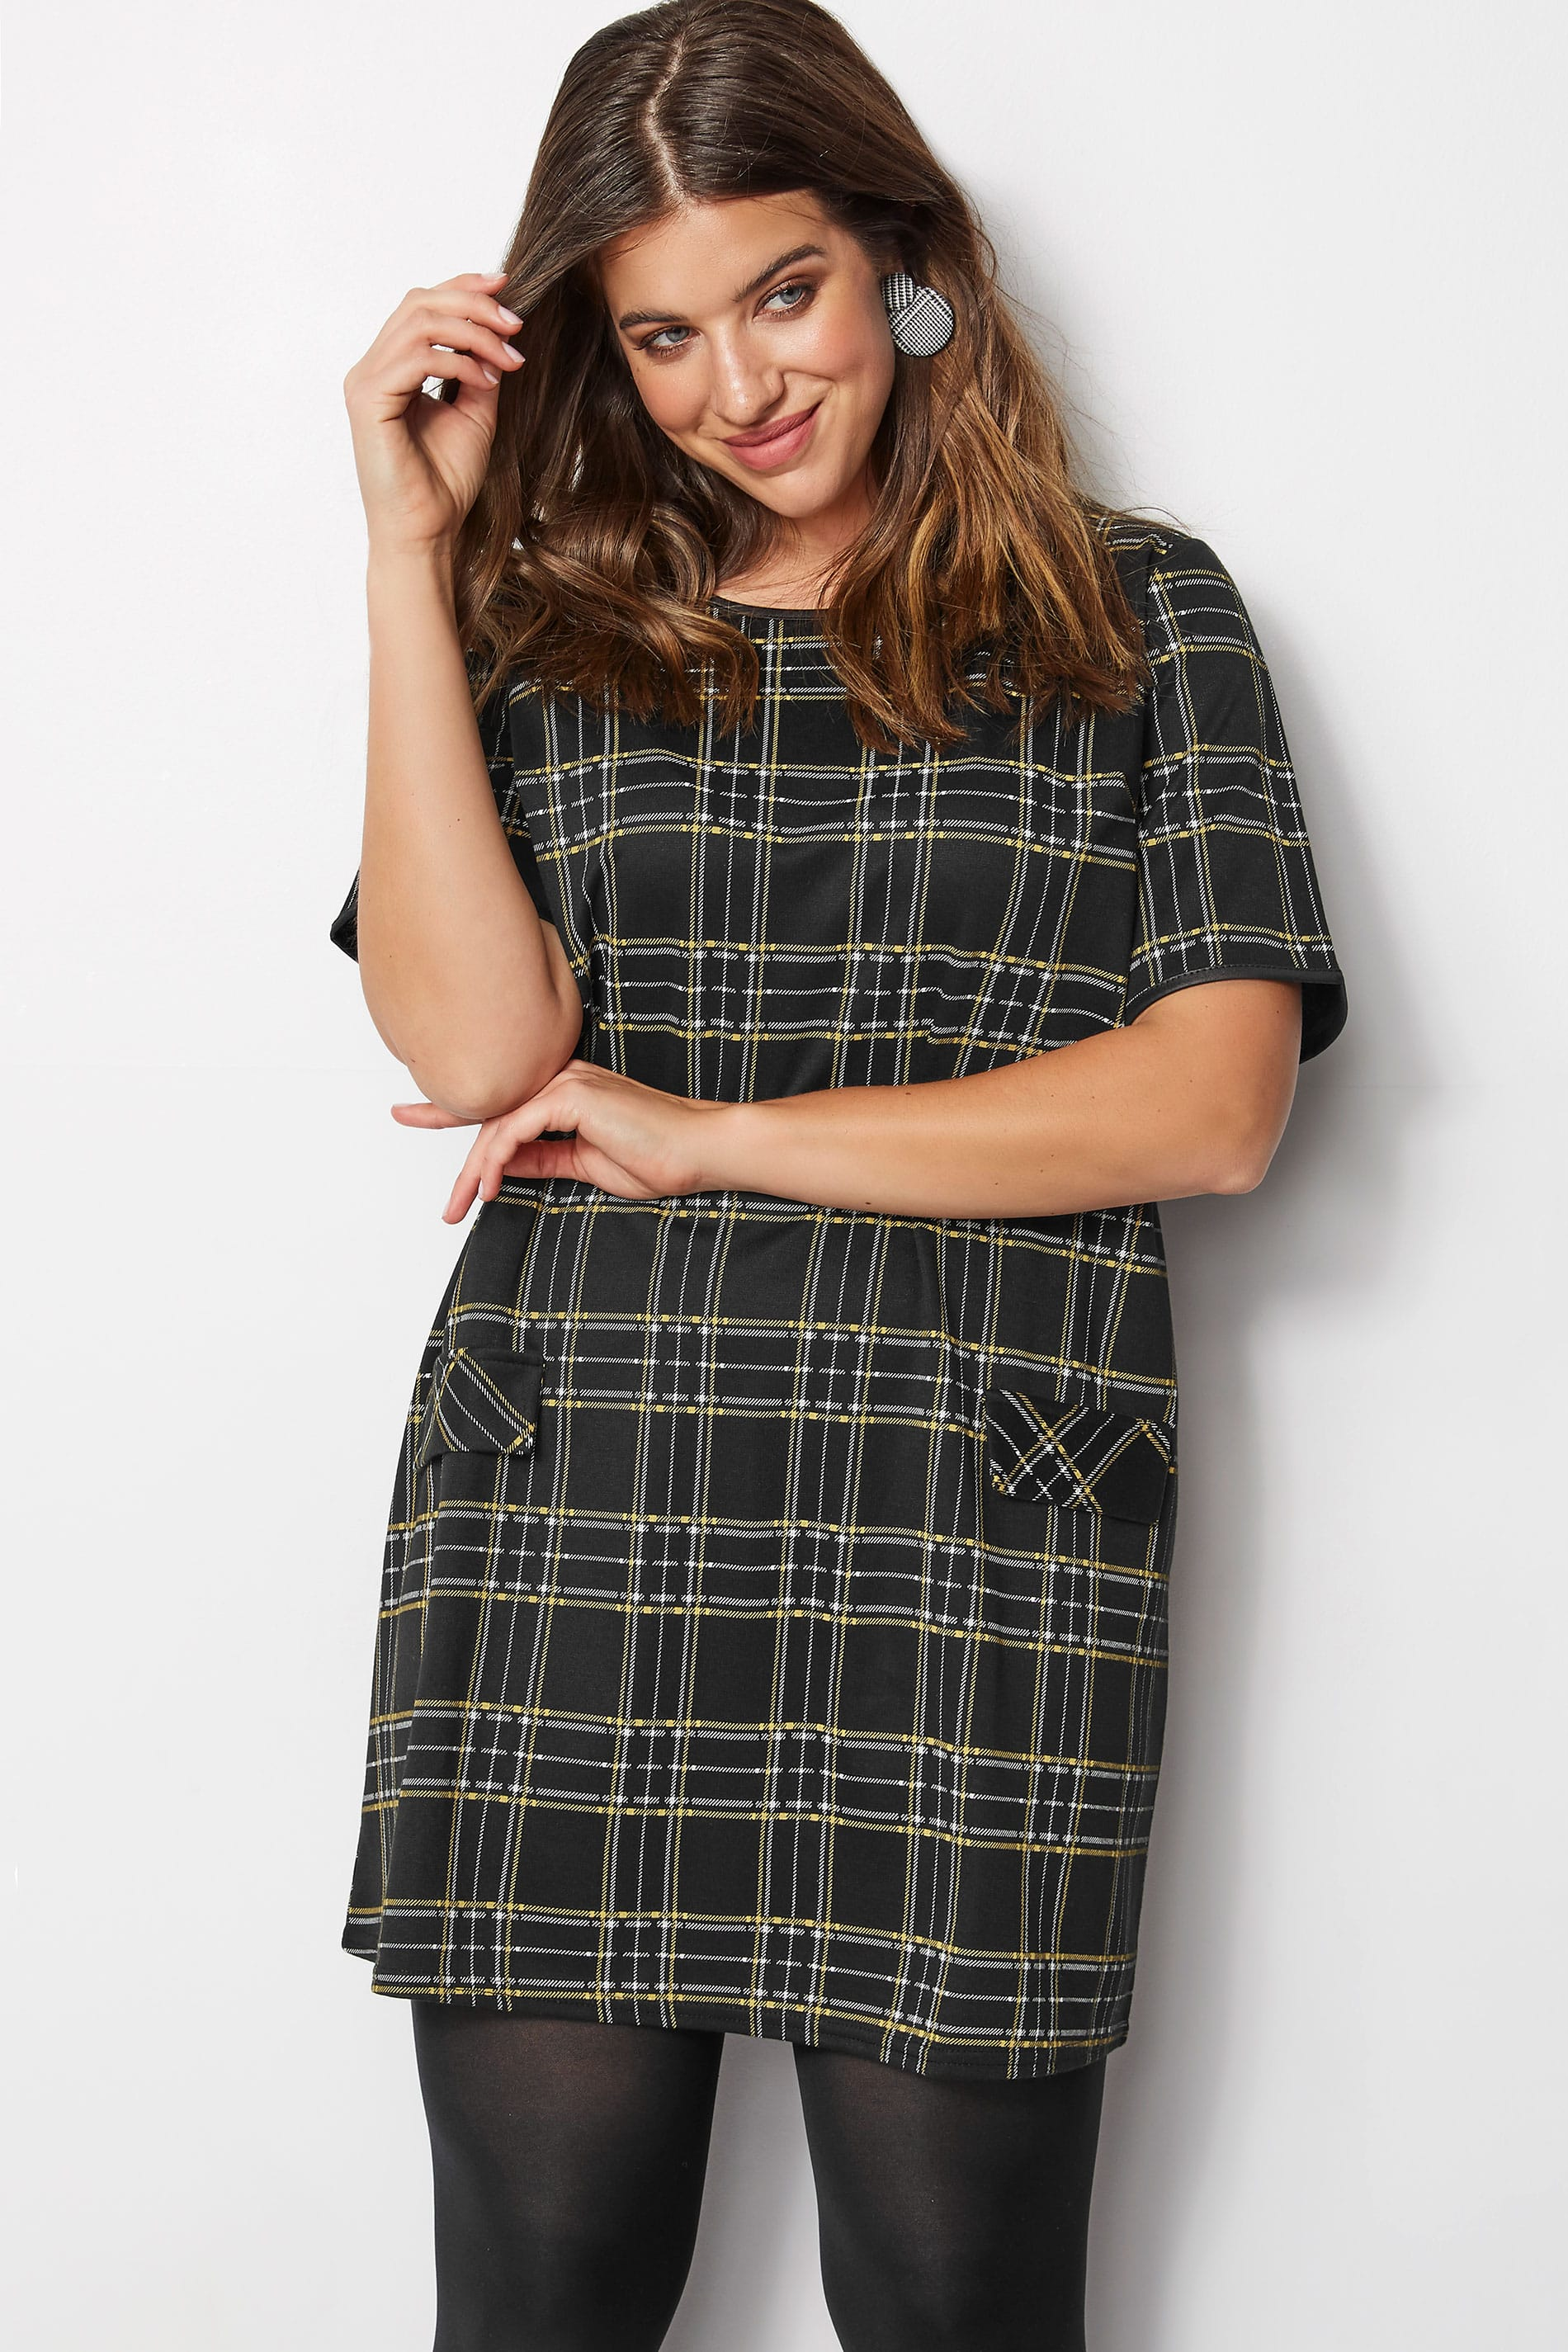 973862e5dd7 LIMITED COLLECTION Plus Size Black & Yellow Check Tunic Dress | Plus ...